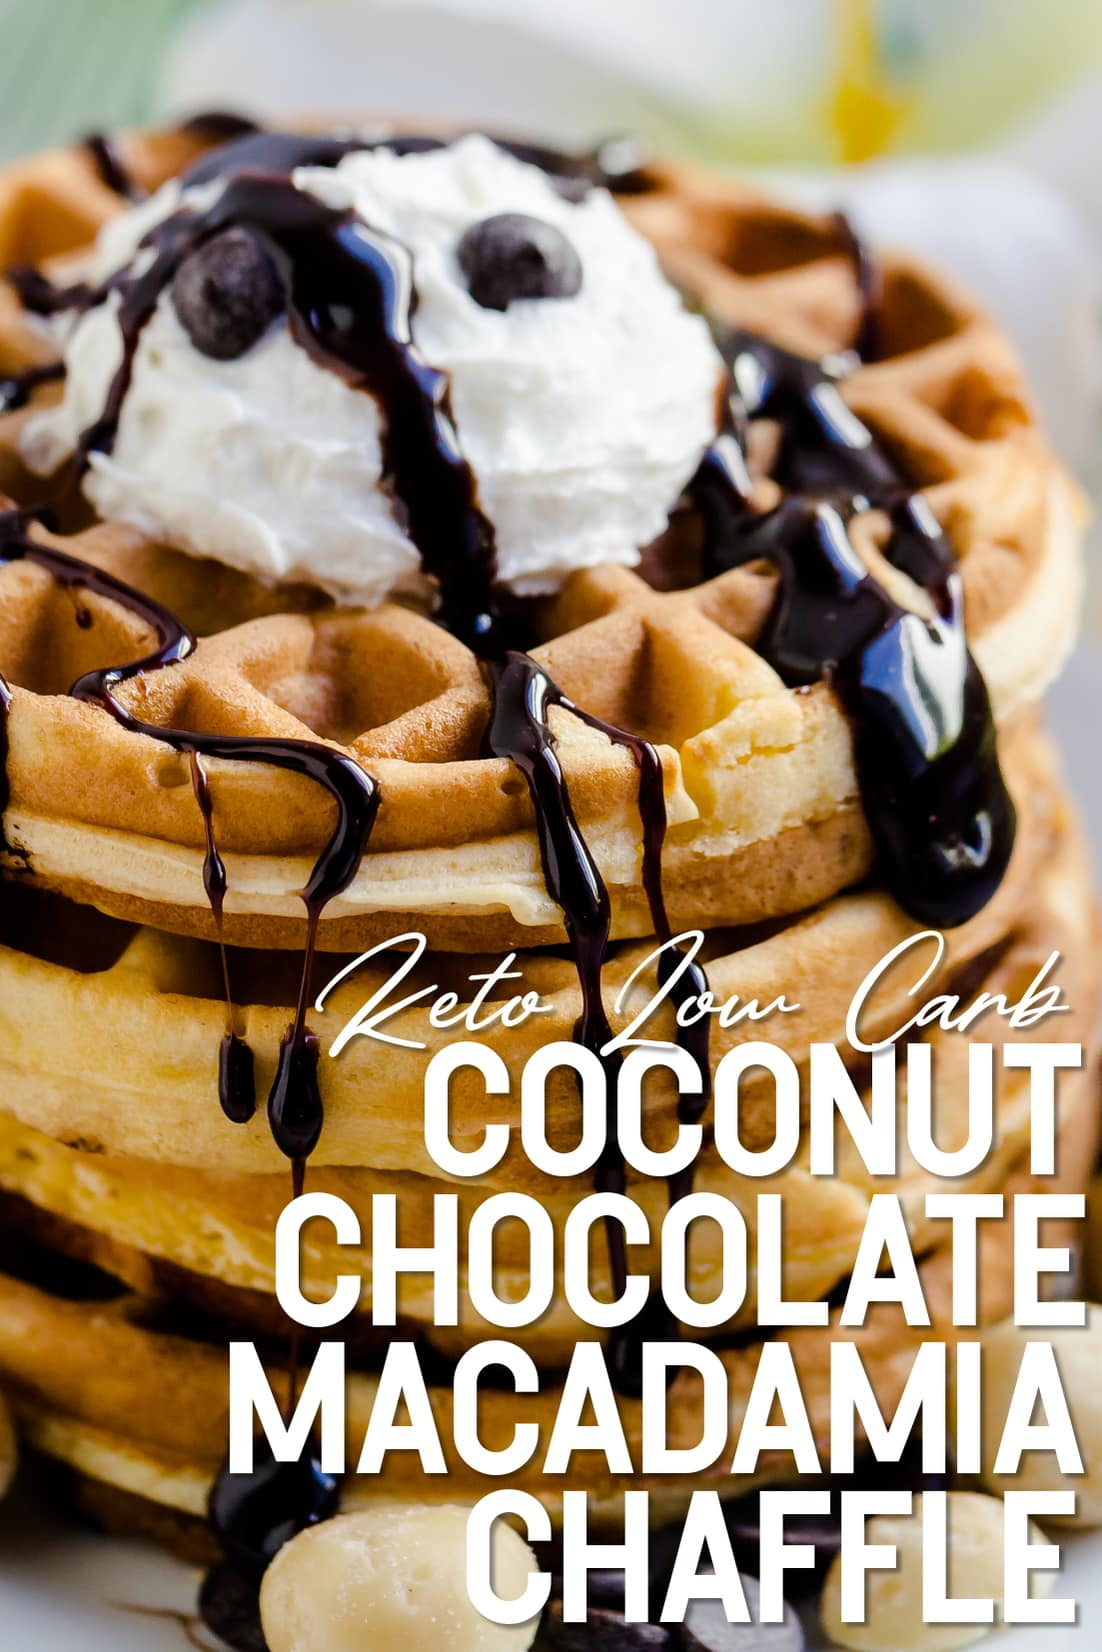 Coconut Chocolate Chip Macadamia Nut Chaffle served with whip cream and keto chocolate syrup